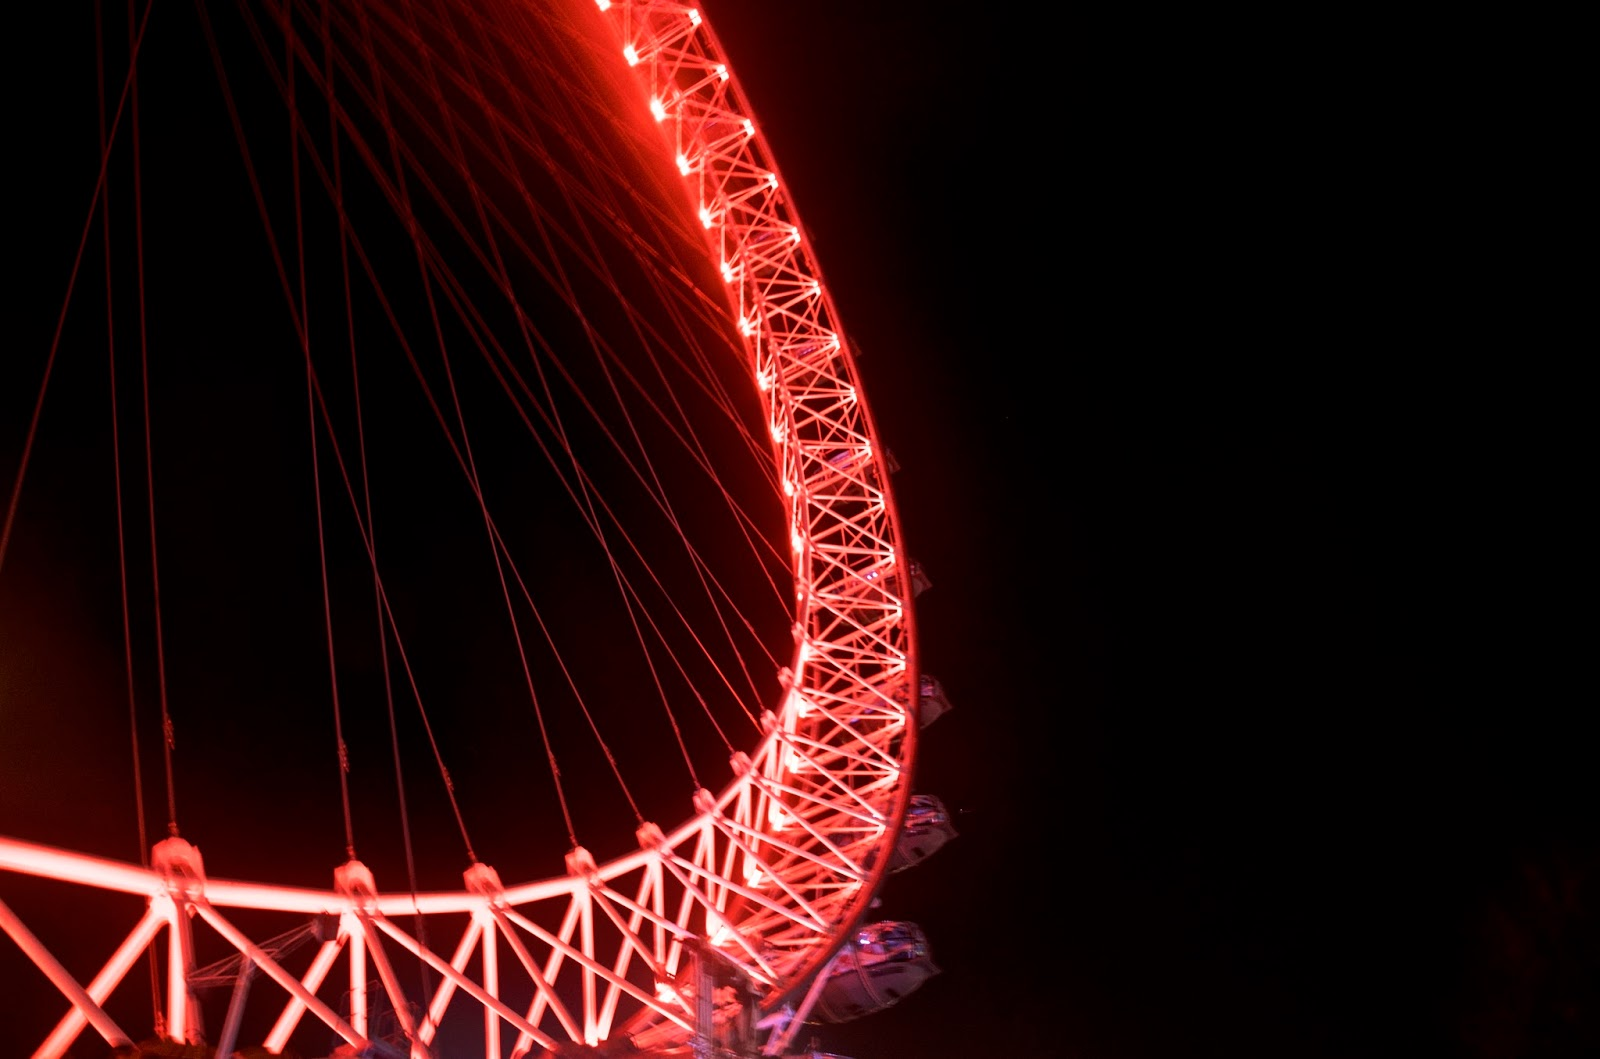 London Eye at night with red lights